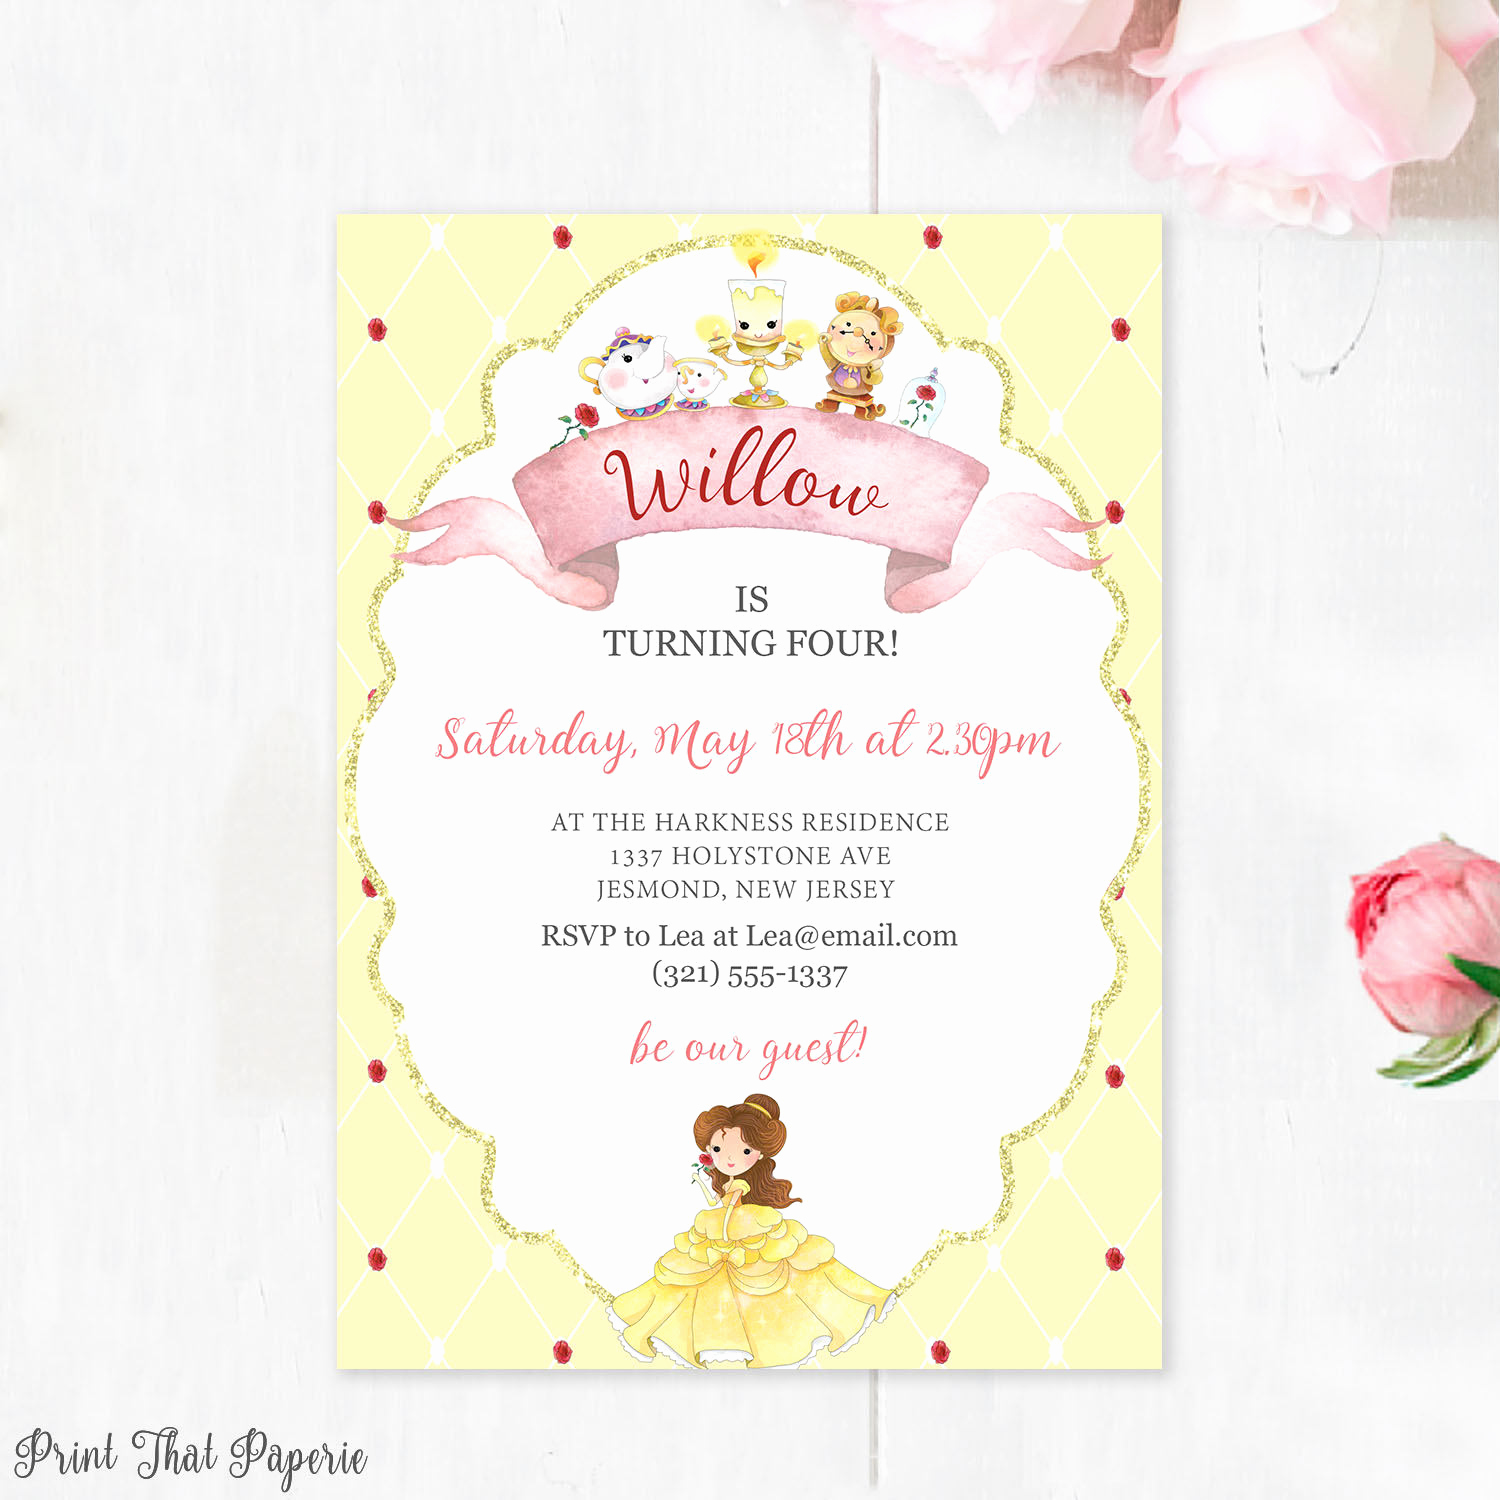 Beauty and the Beast Invitation Inspirational Beauty and the Beast Birthday Invitation Belle Invitation